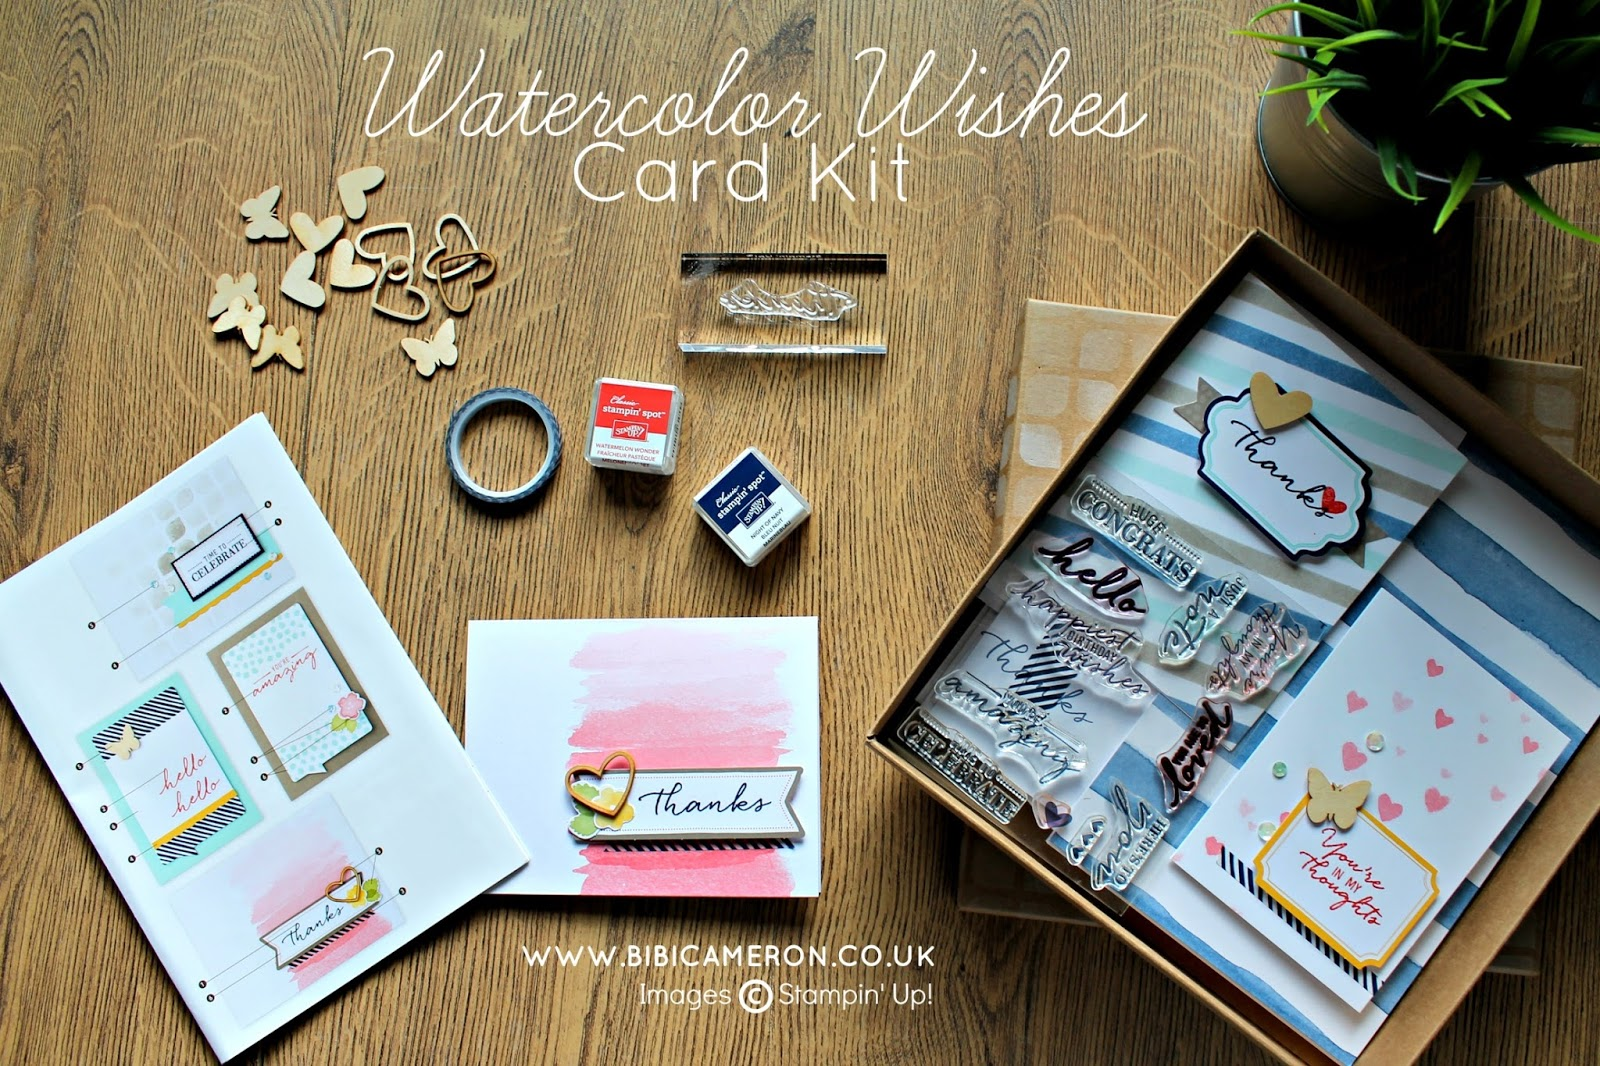 WATERCOLOR WISHES CARD KIT  STAMPIN UP  #GDP032  CASING  KRISTA FRATTIN